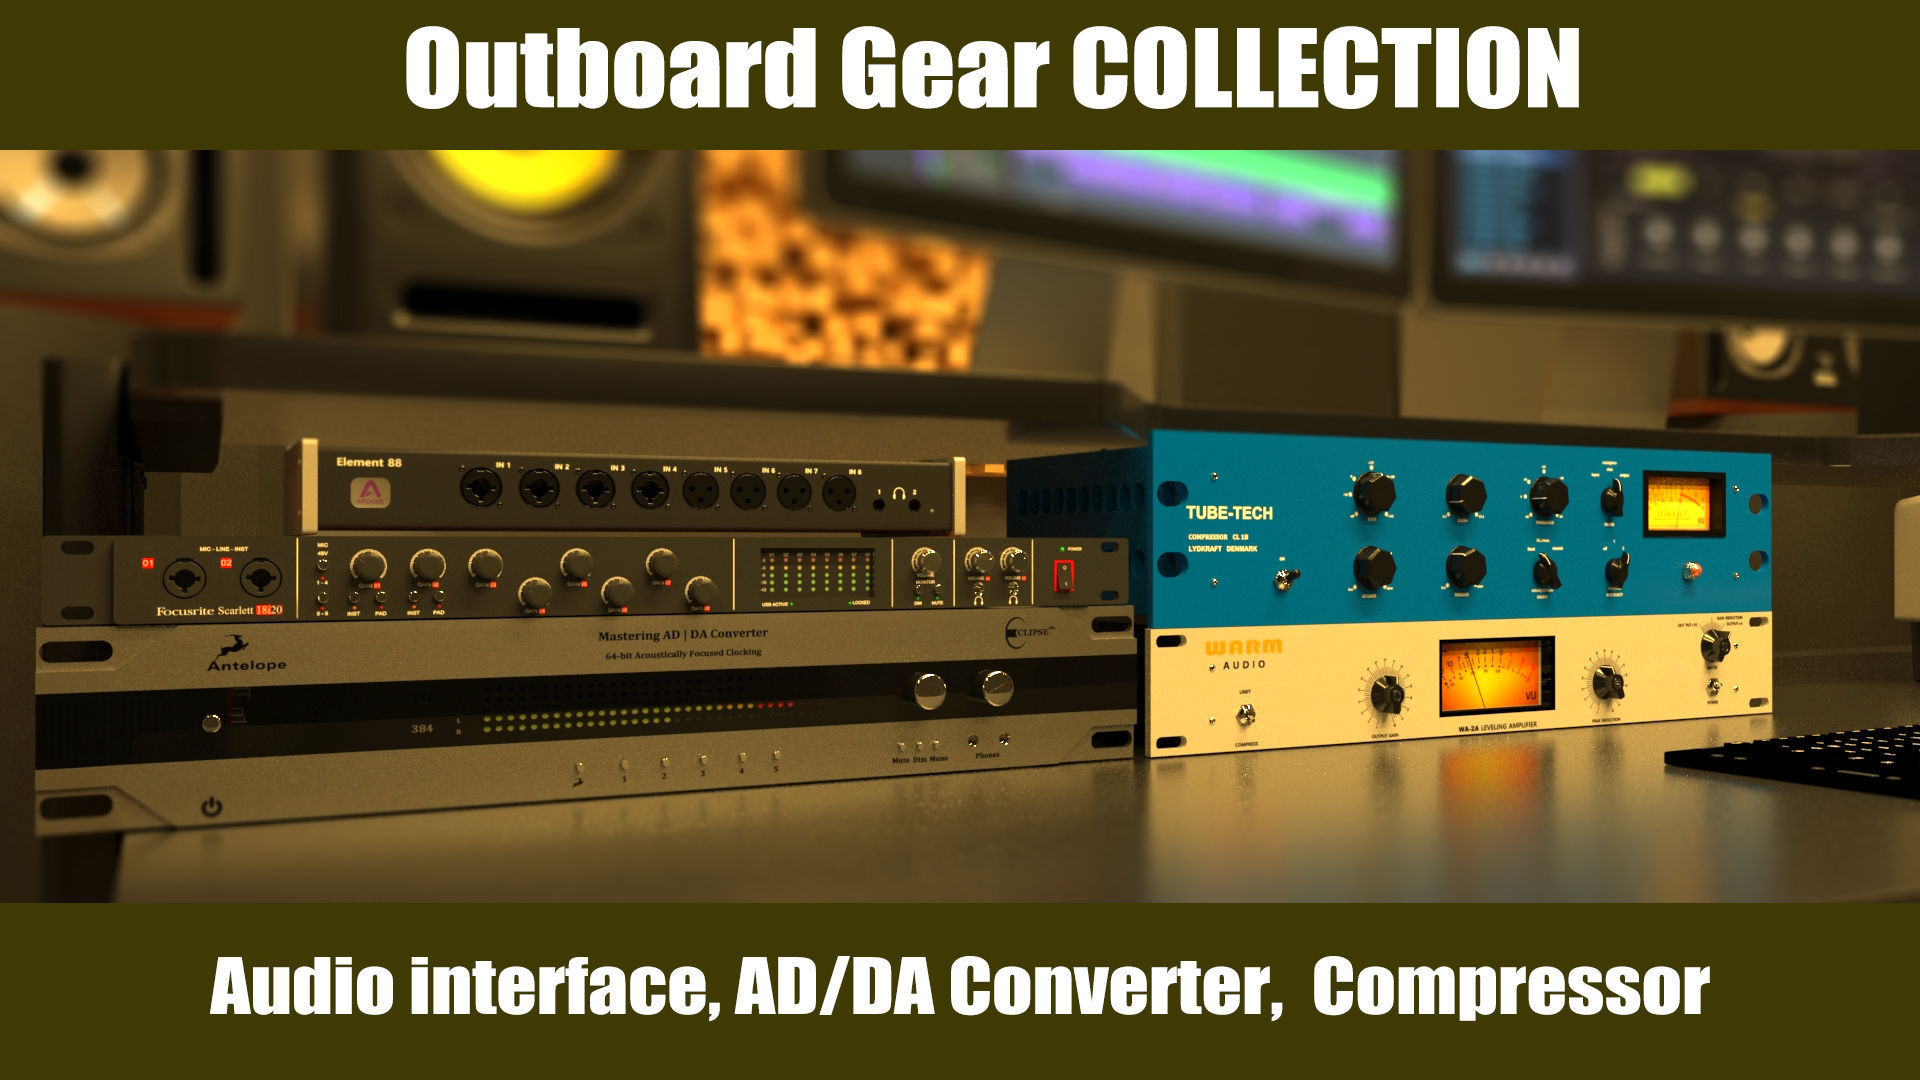 Outboard Gear COLLECTION